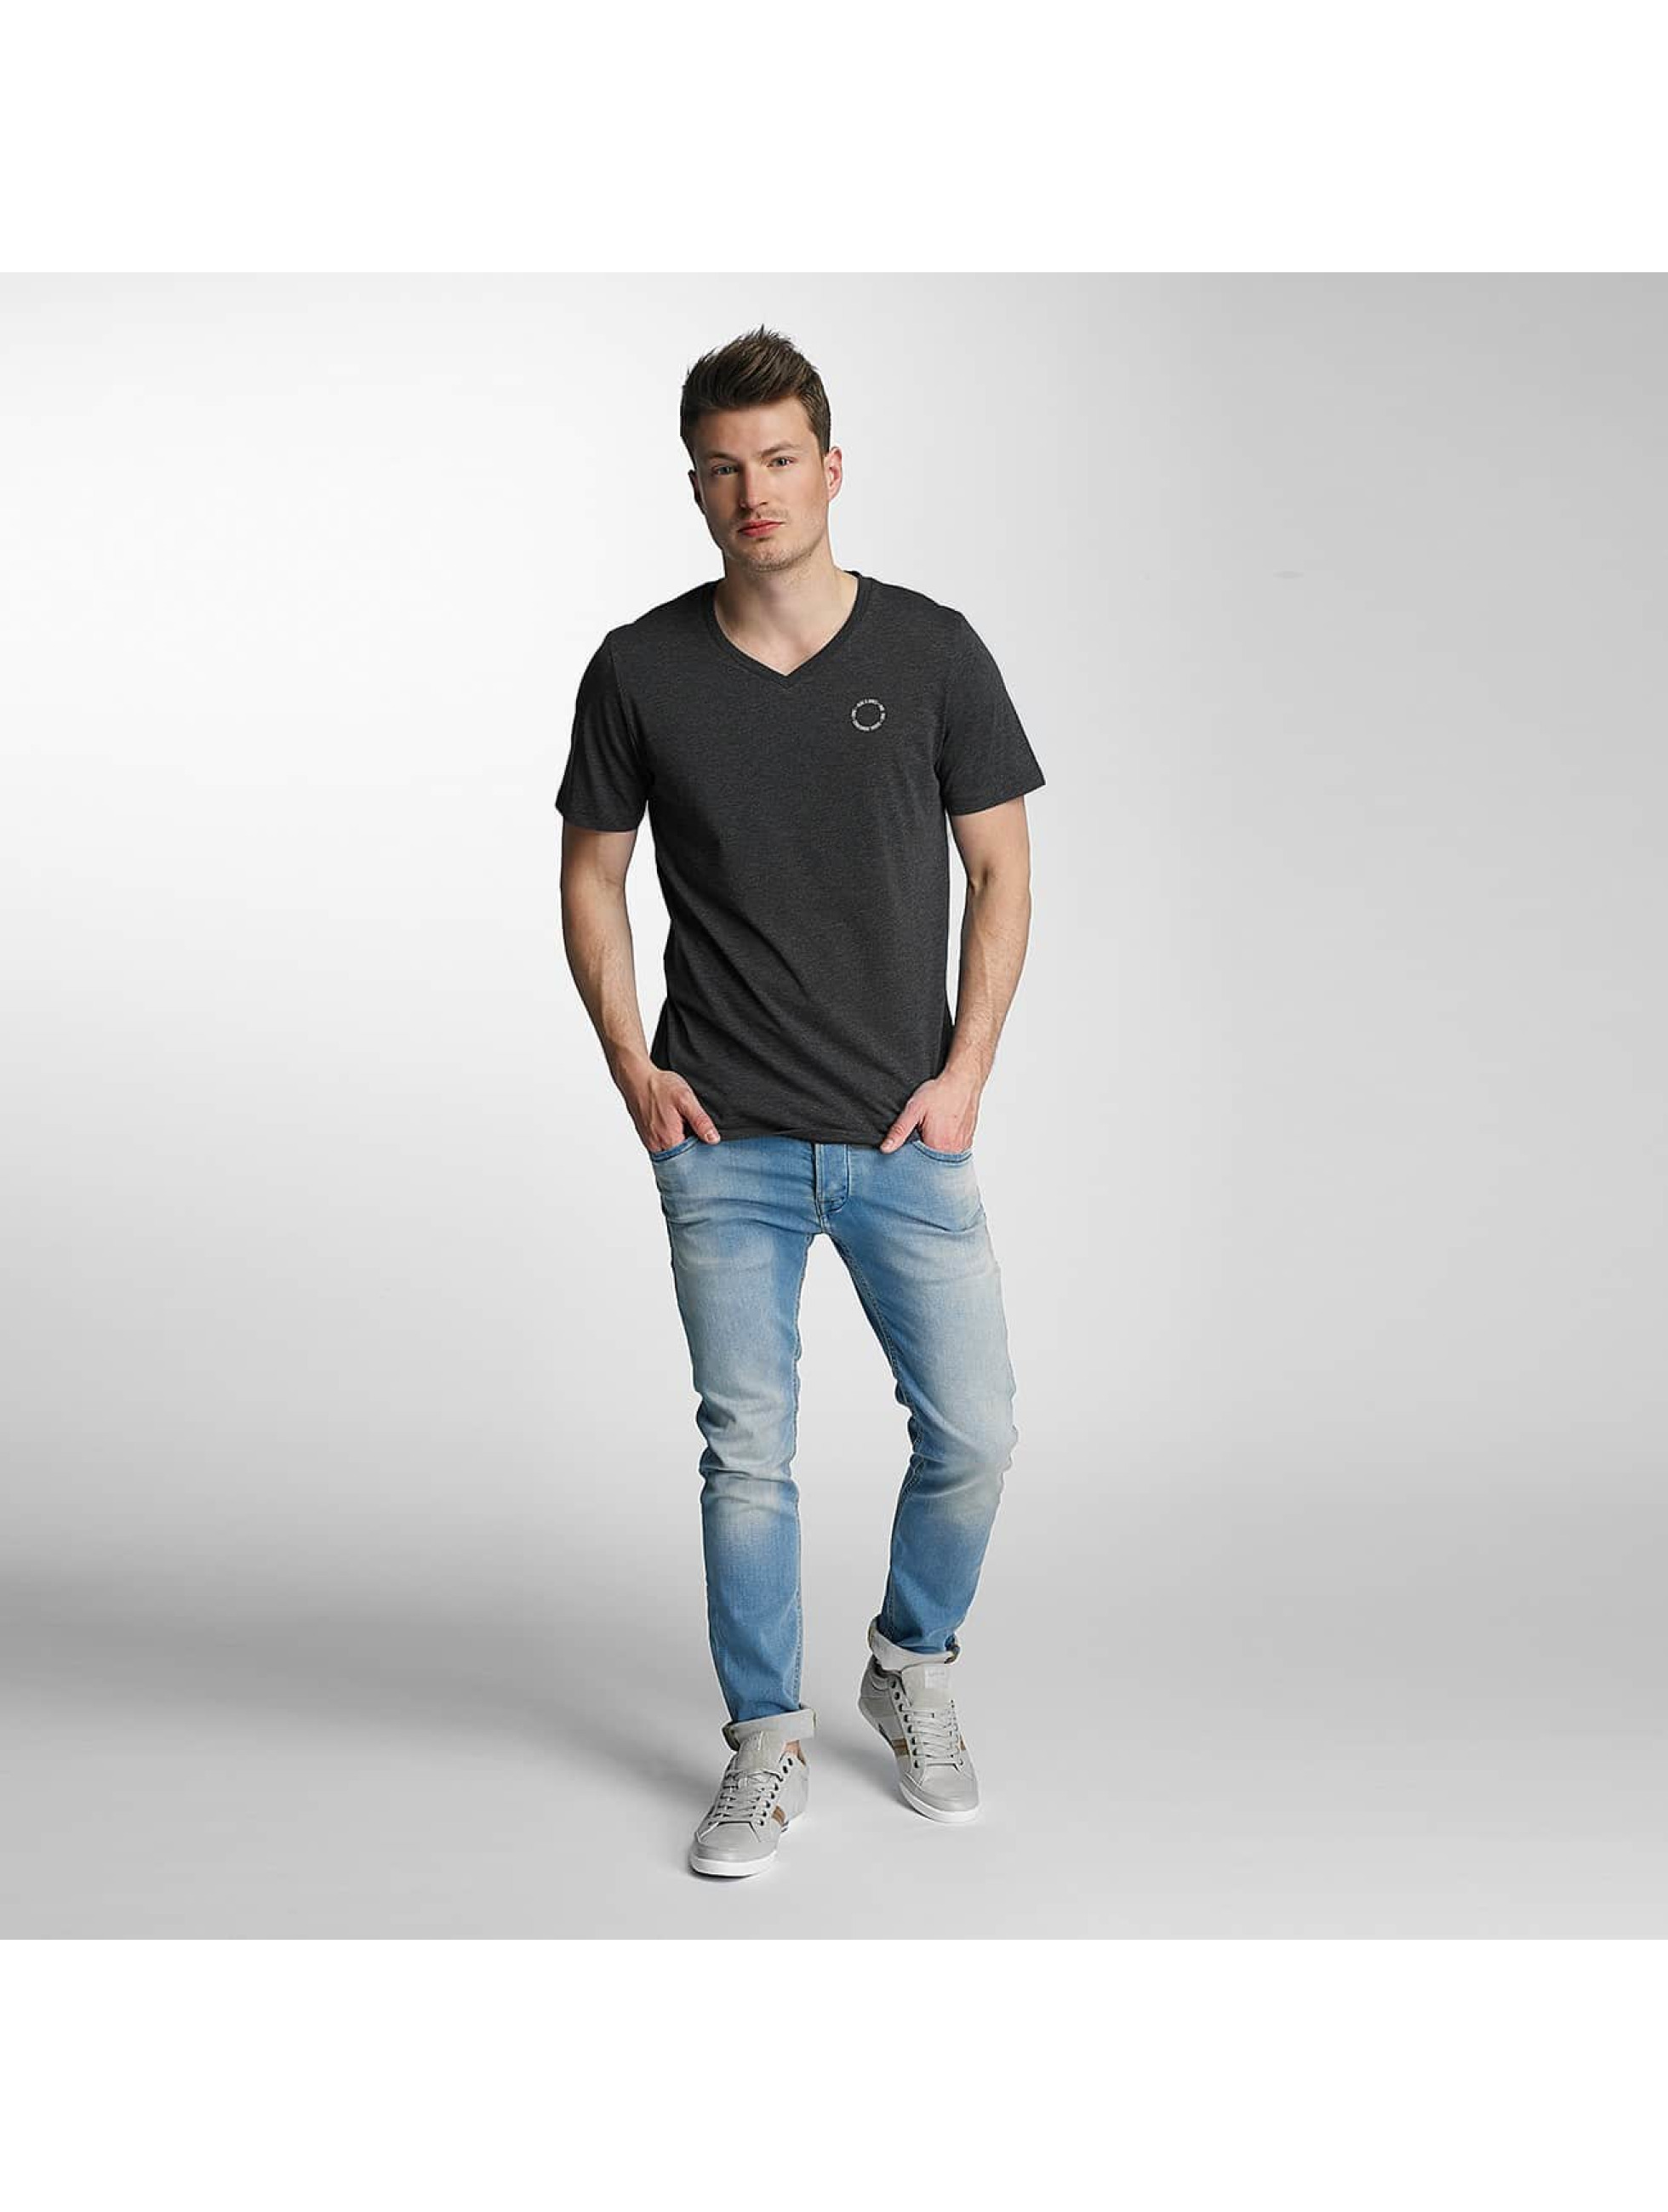 Jack & Jones T-Shirt jcoTuff schwarz